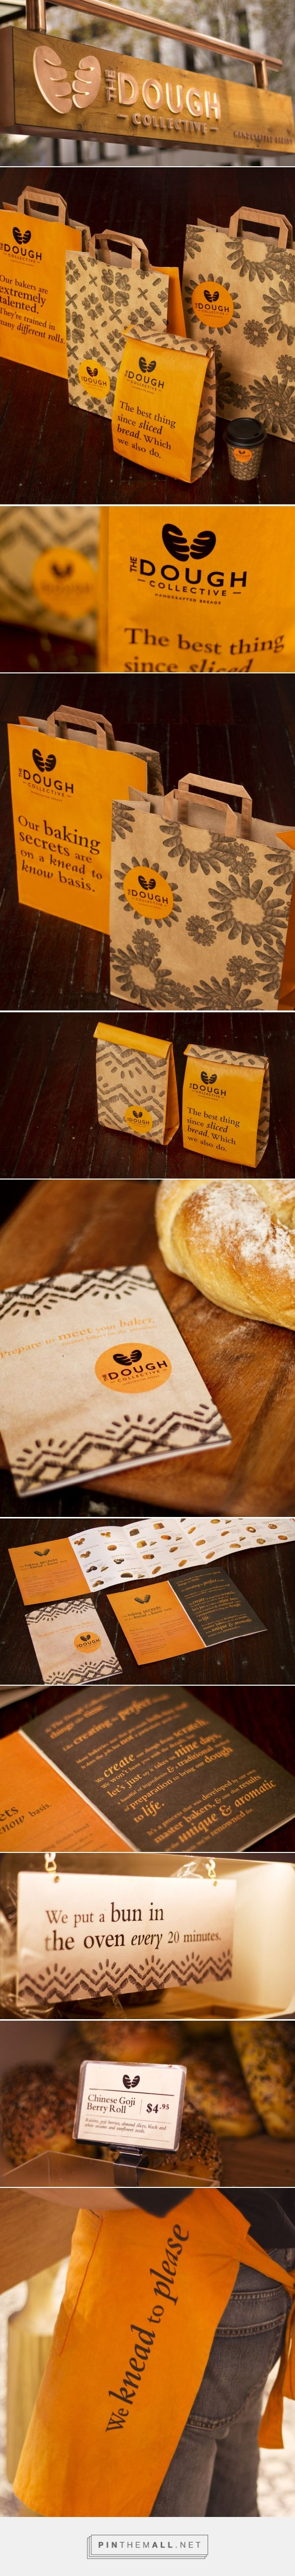 The Dough Collective Bakery Branding and Packaging by The Creative Method | Fivestar Branding Agency – Design and Branding Agency & Curated Inspiration Gallery